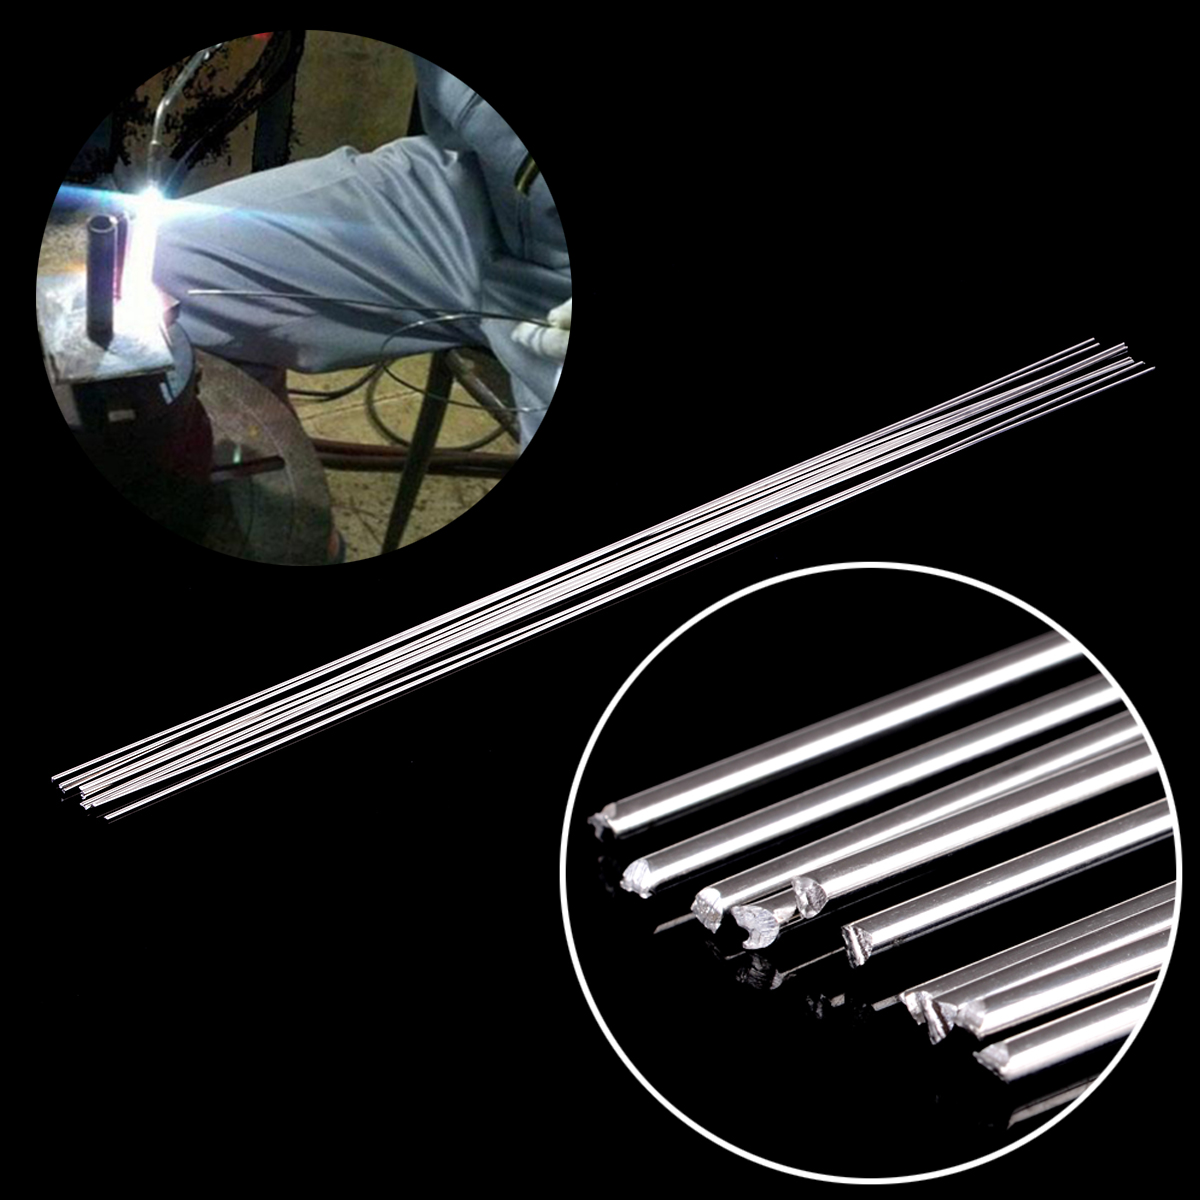 10pcs Silver Aluminum Welding Rod Low Temperature Metal Soldering Brazing Rods 1.6mmx45cm with Corrosion Resistance